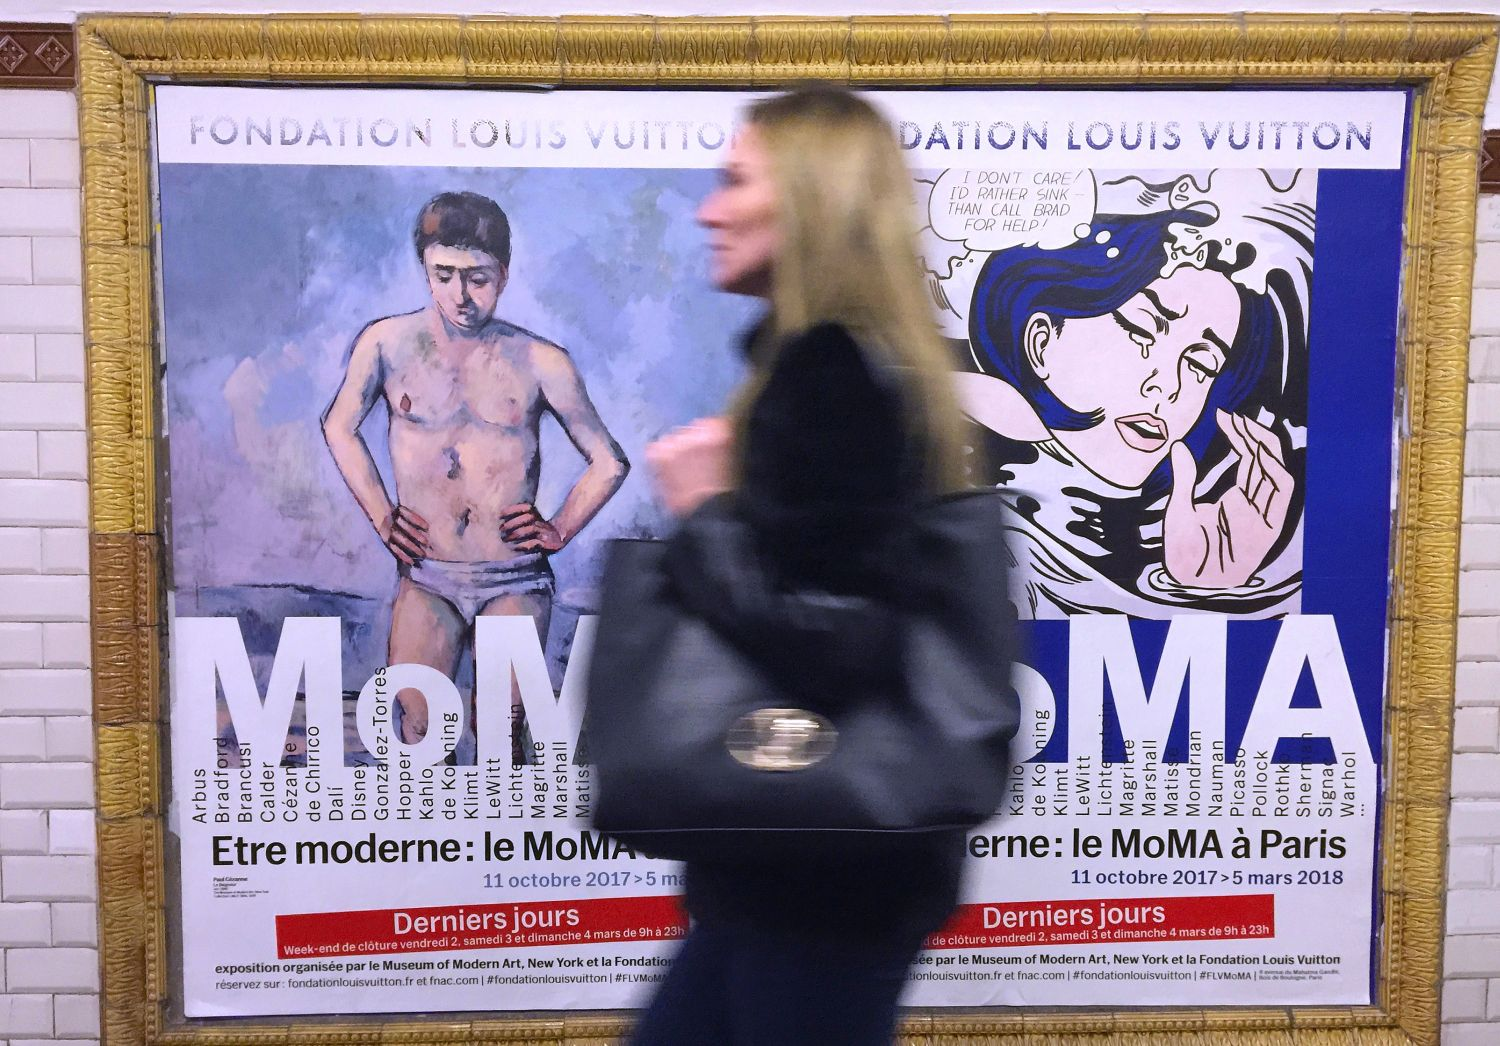 Paris | Metro | Ratp | The poster of the Moma exhibition at Fondation Vuitton | streetphotography |©sandrine cohen